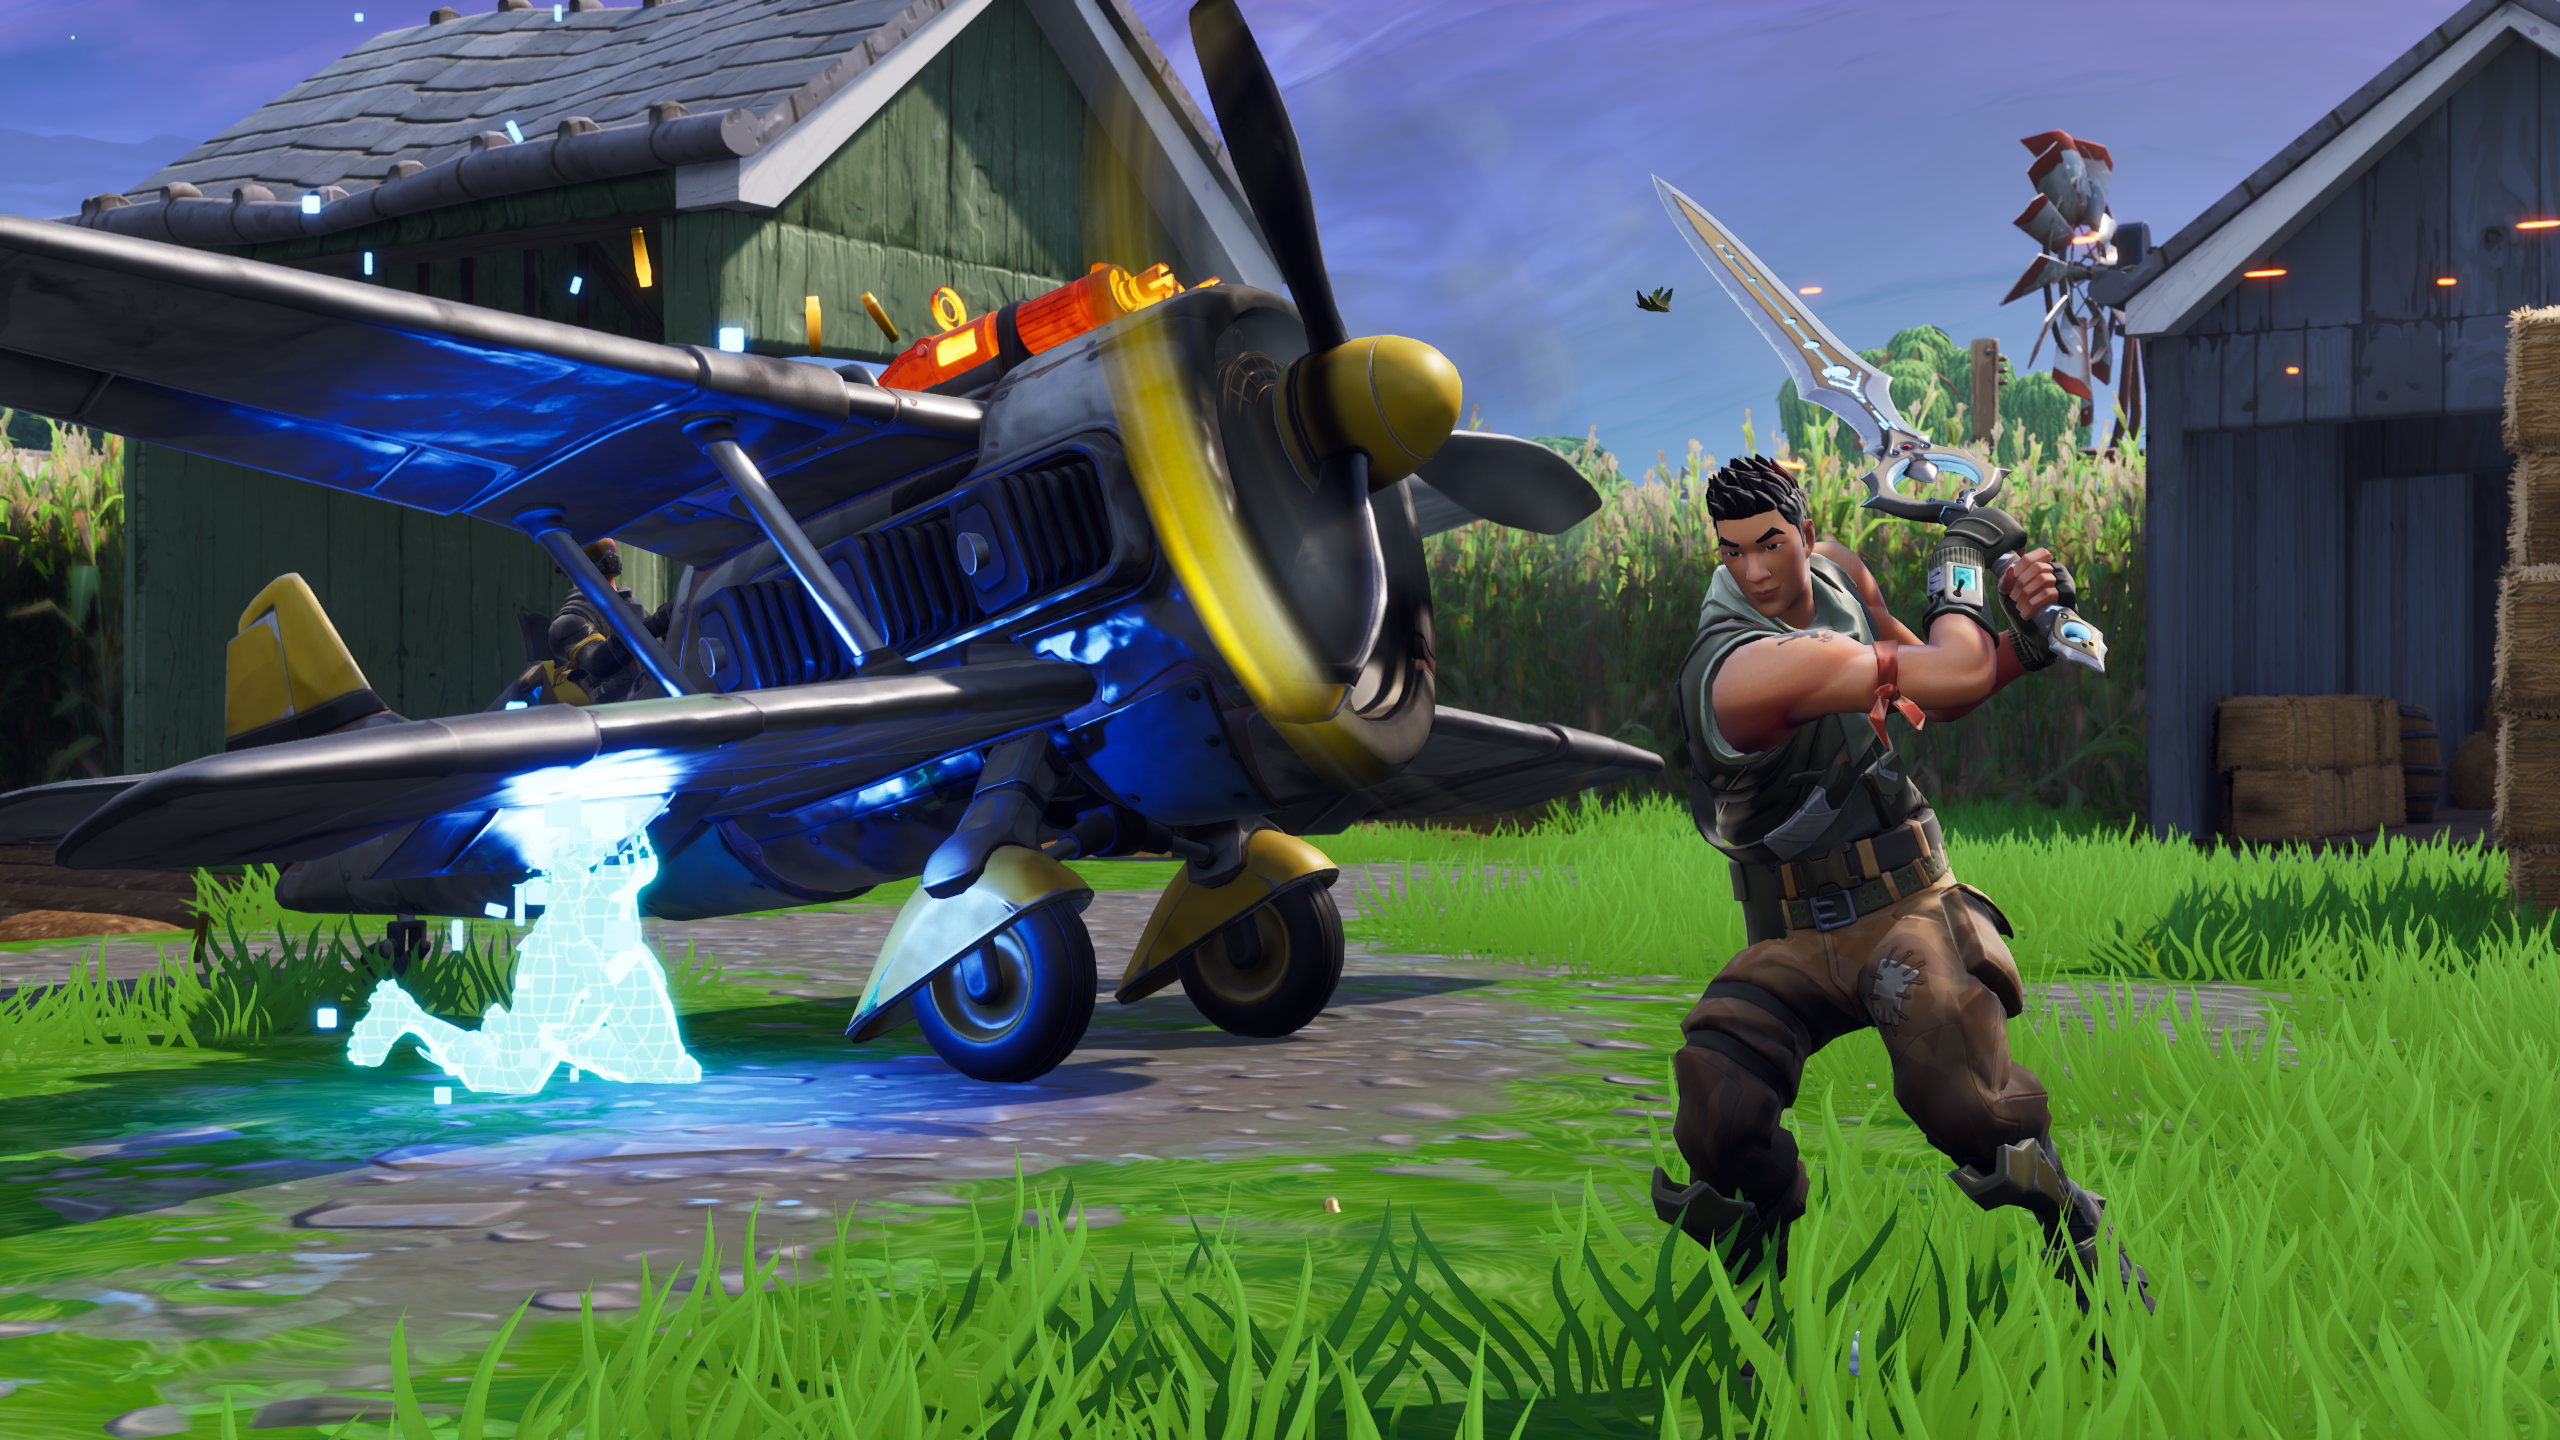 Fortnite S Infinity Blade Homage Has Hacked Off The Fun Rock Paper